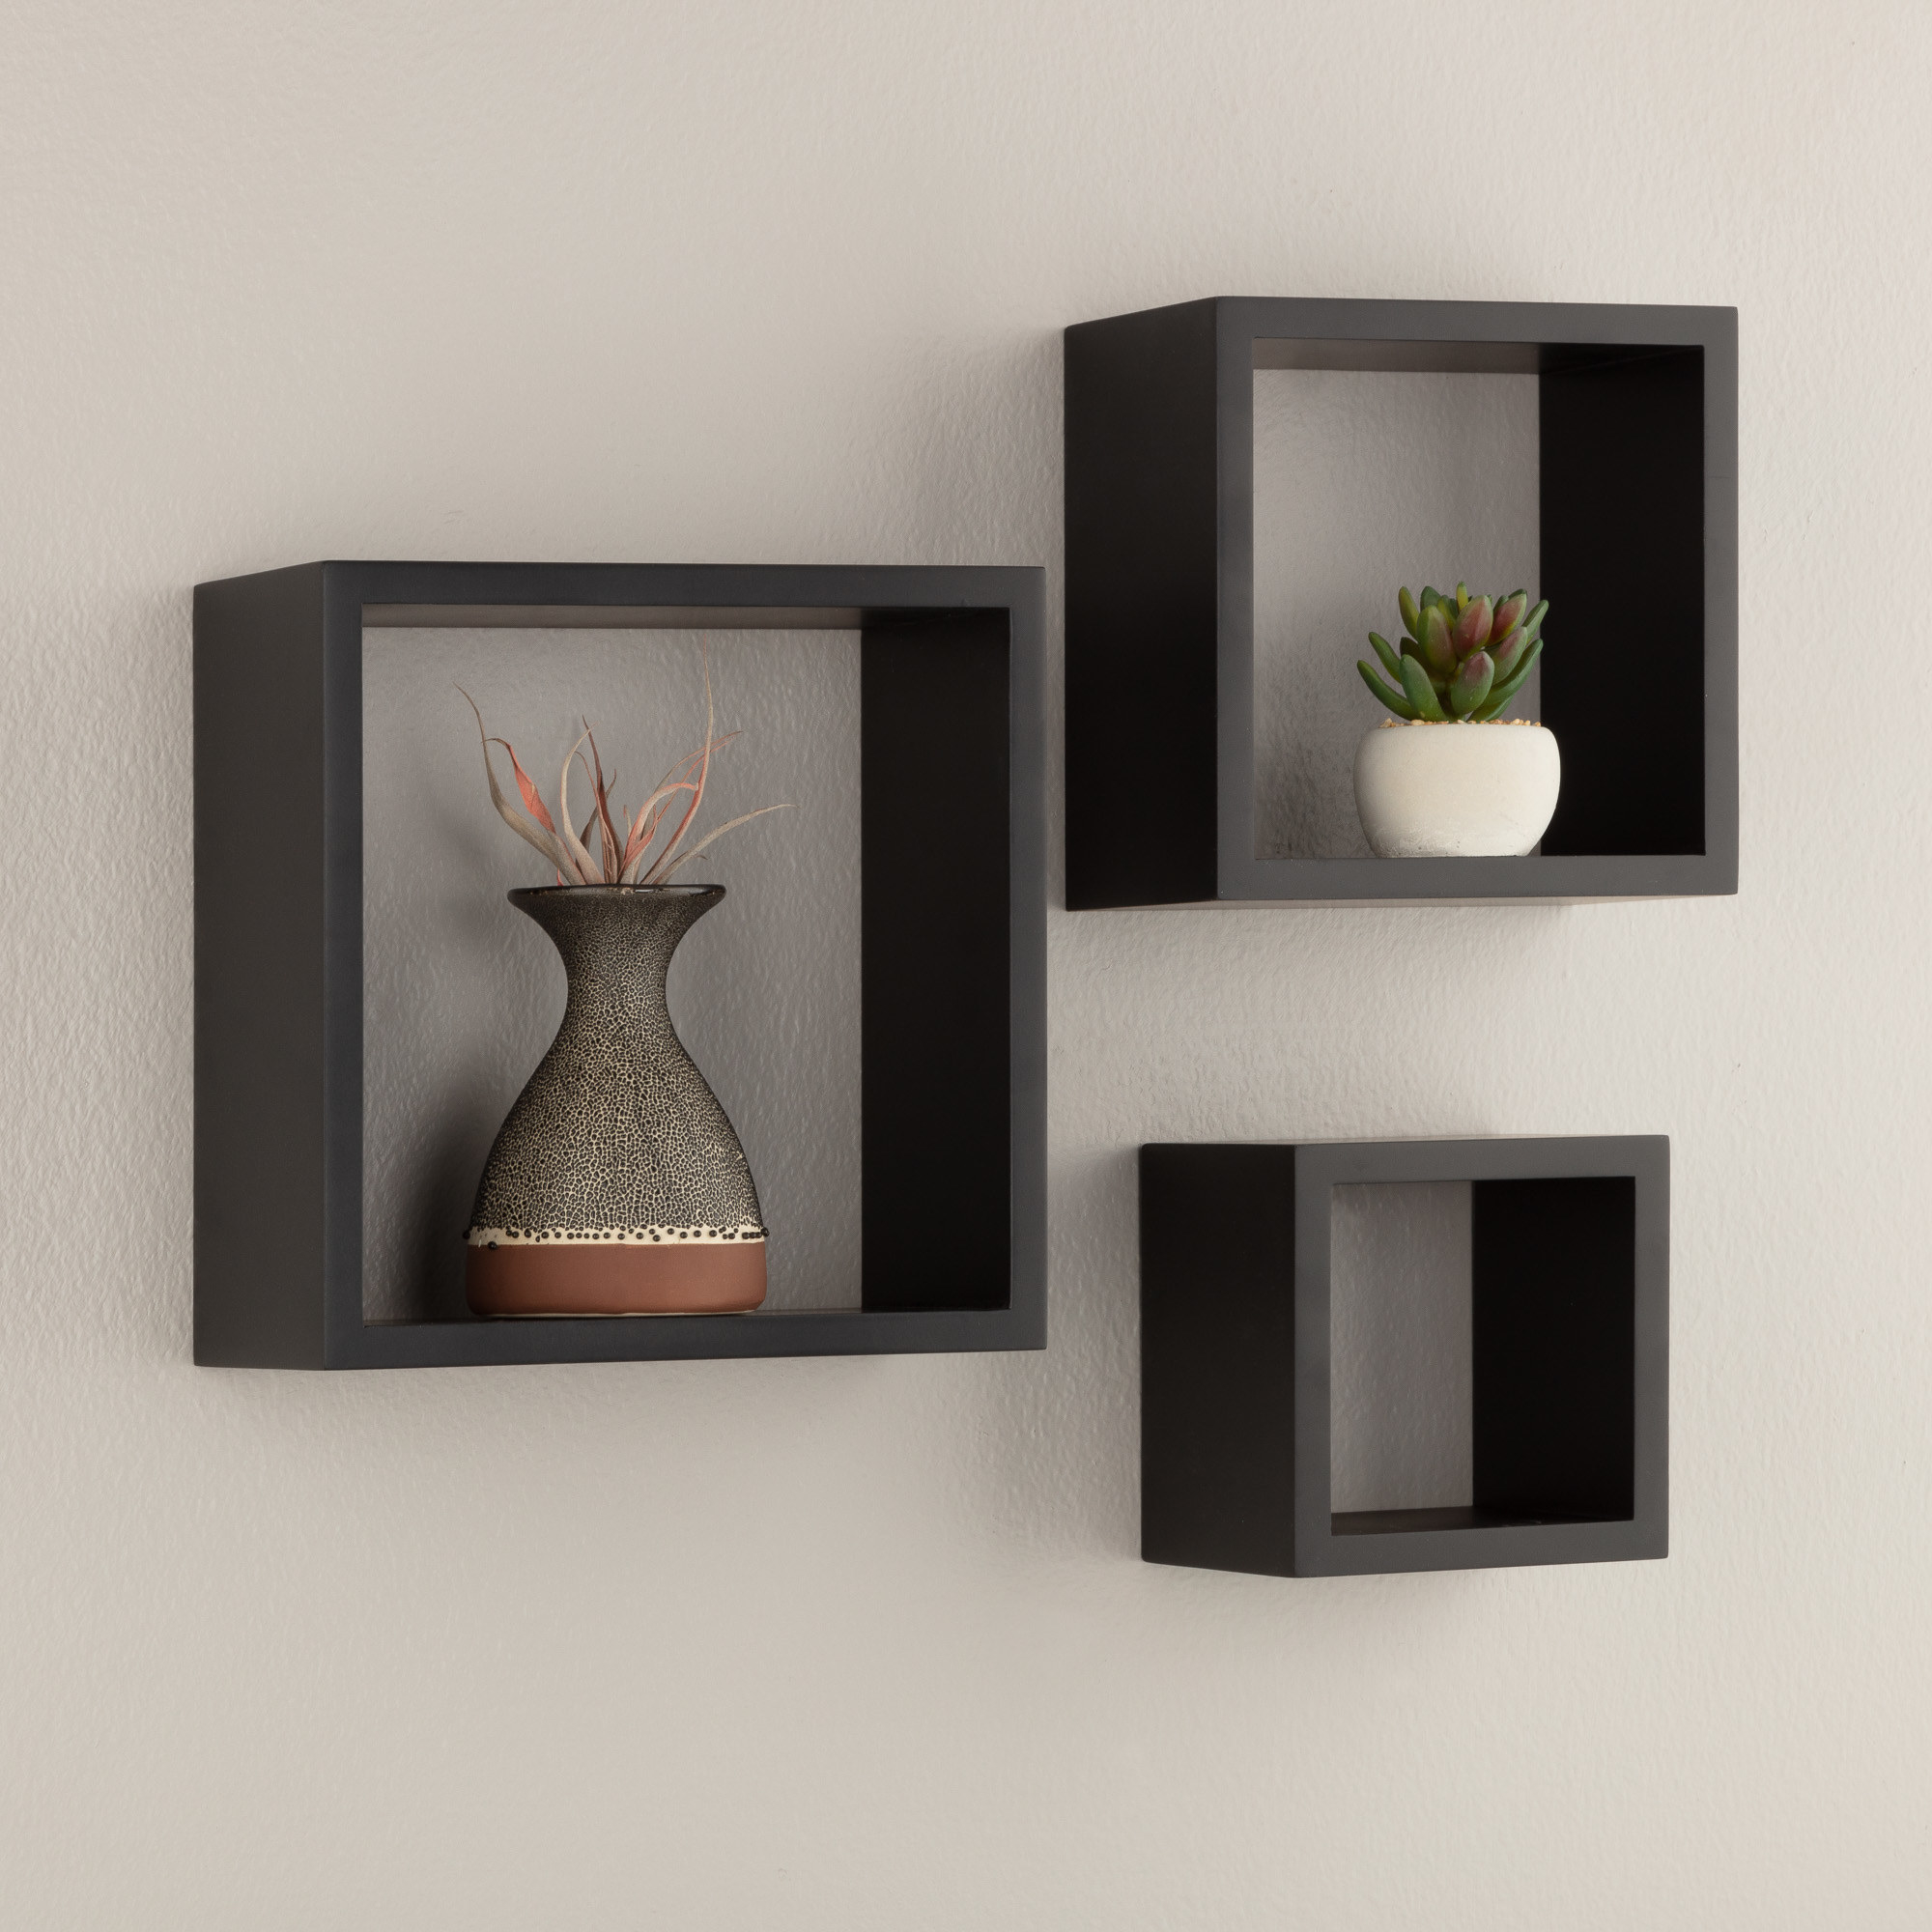 Thethree-piece set of nested floating black wall cubes